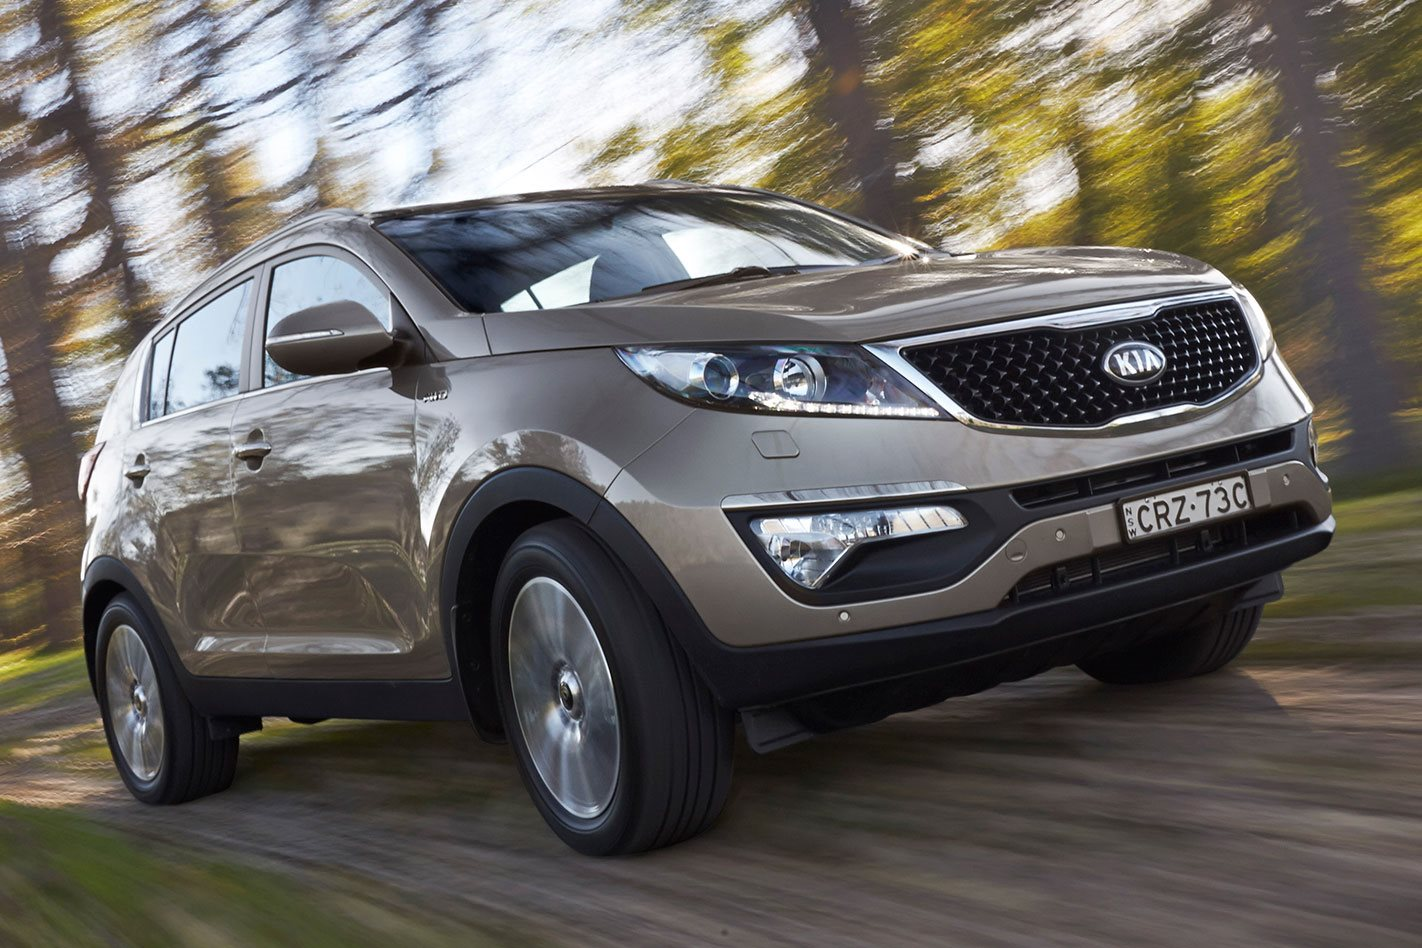 2015 kia sportage review. Black Bedroom Furniture Sets. Home Design Ideas